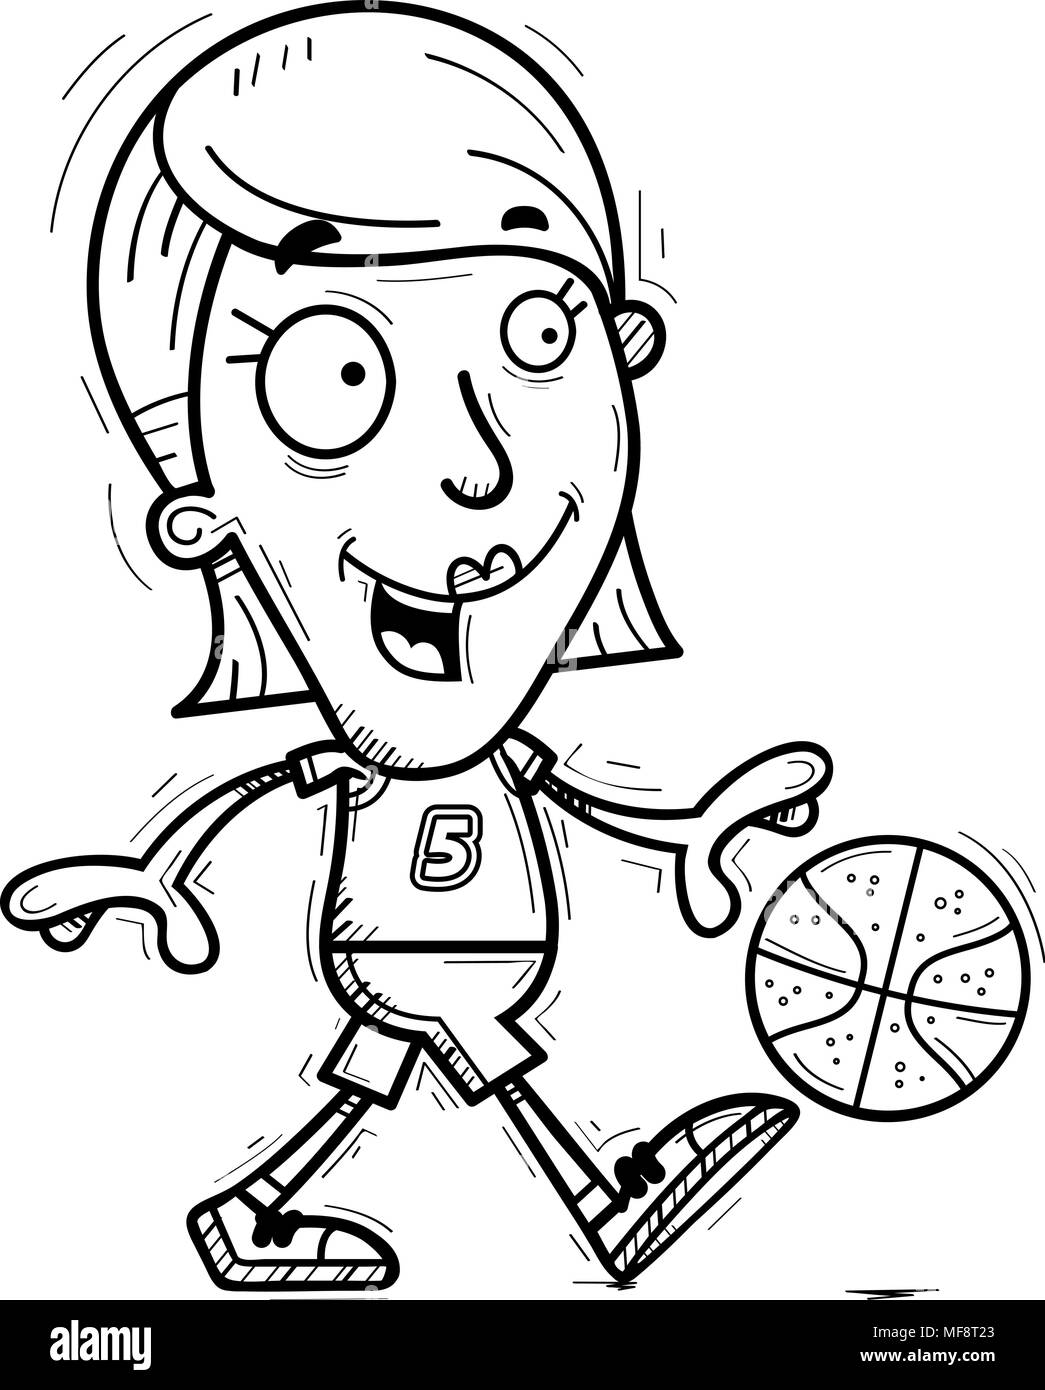 A cartoon illustration of a woman basketball player walking. - Stock Image